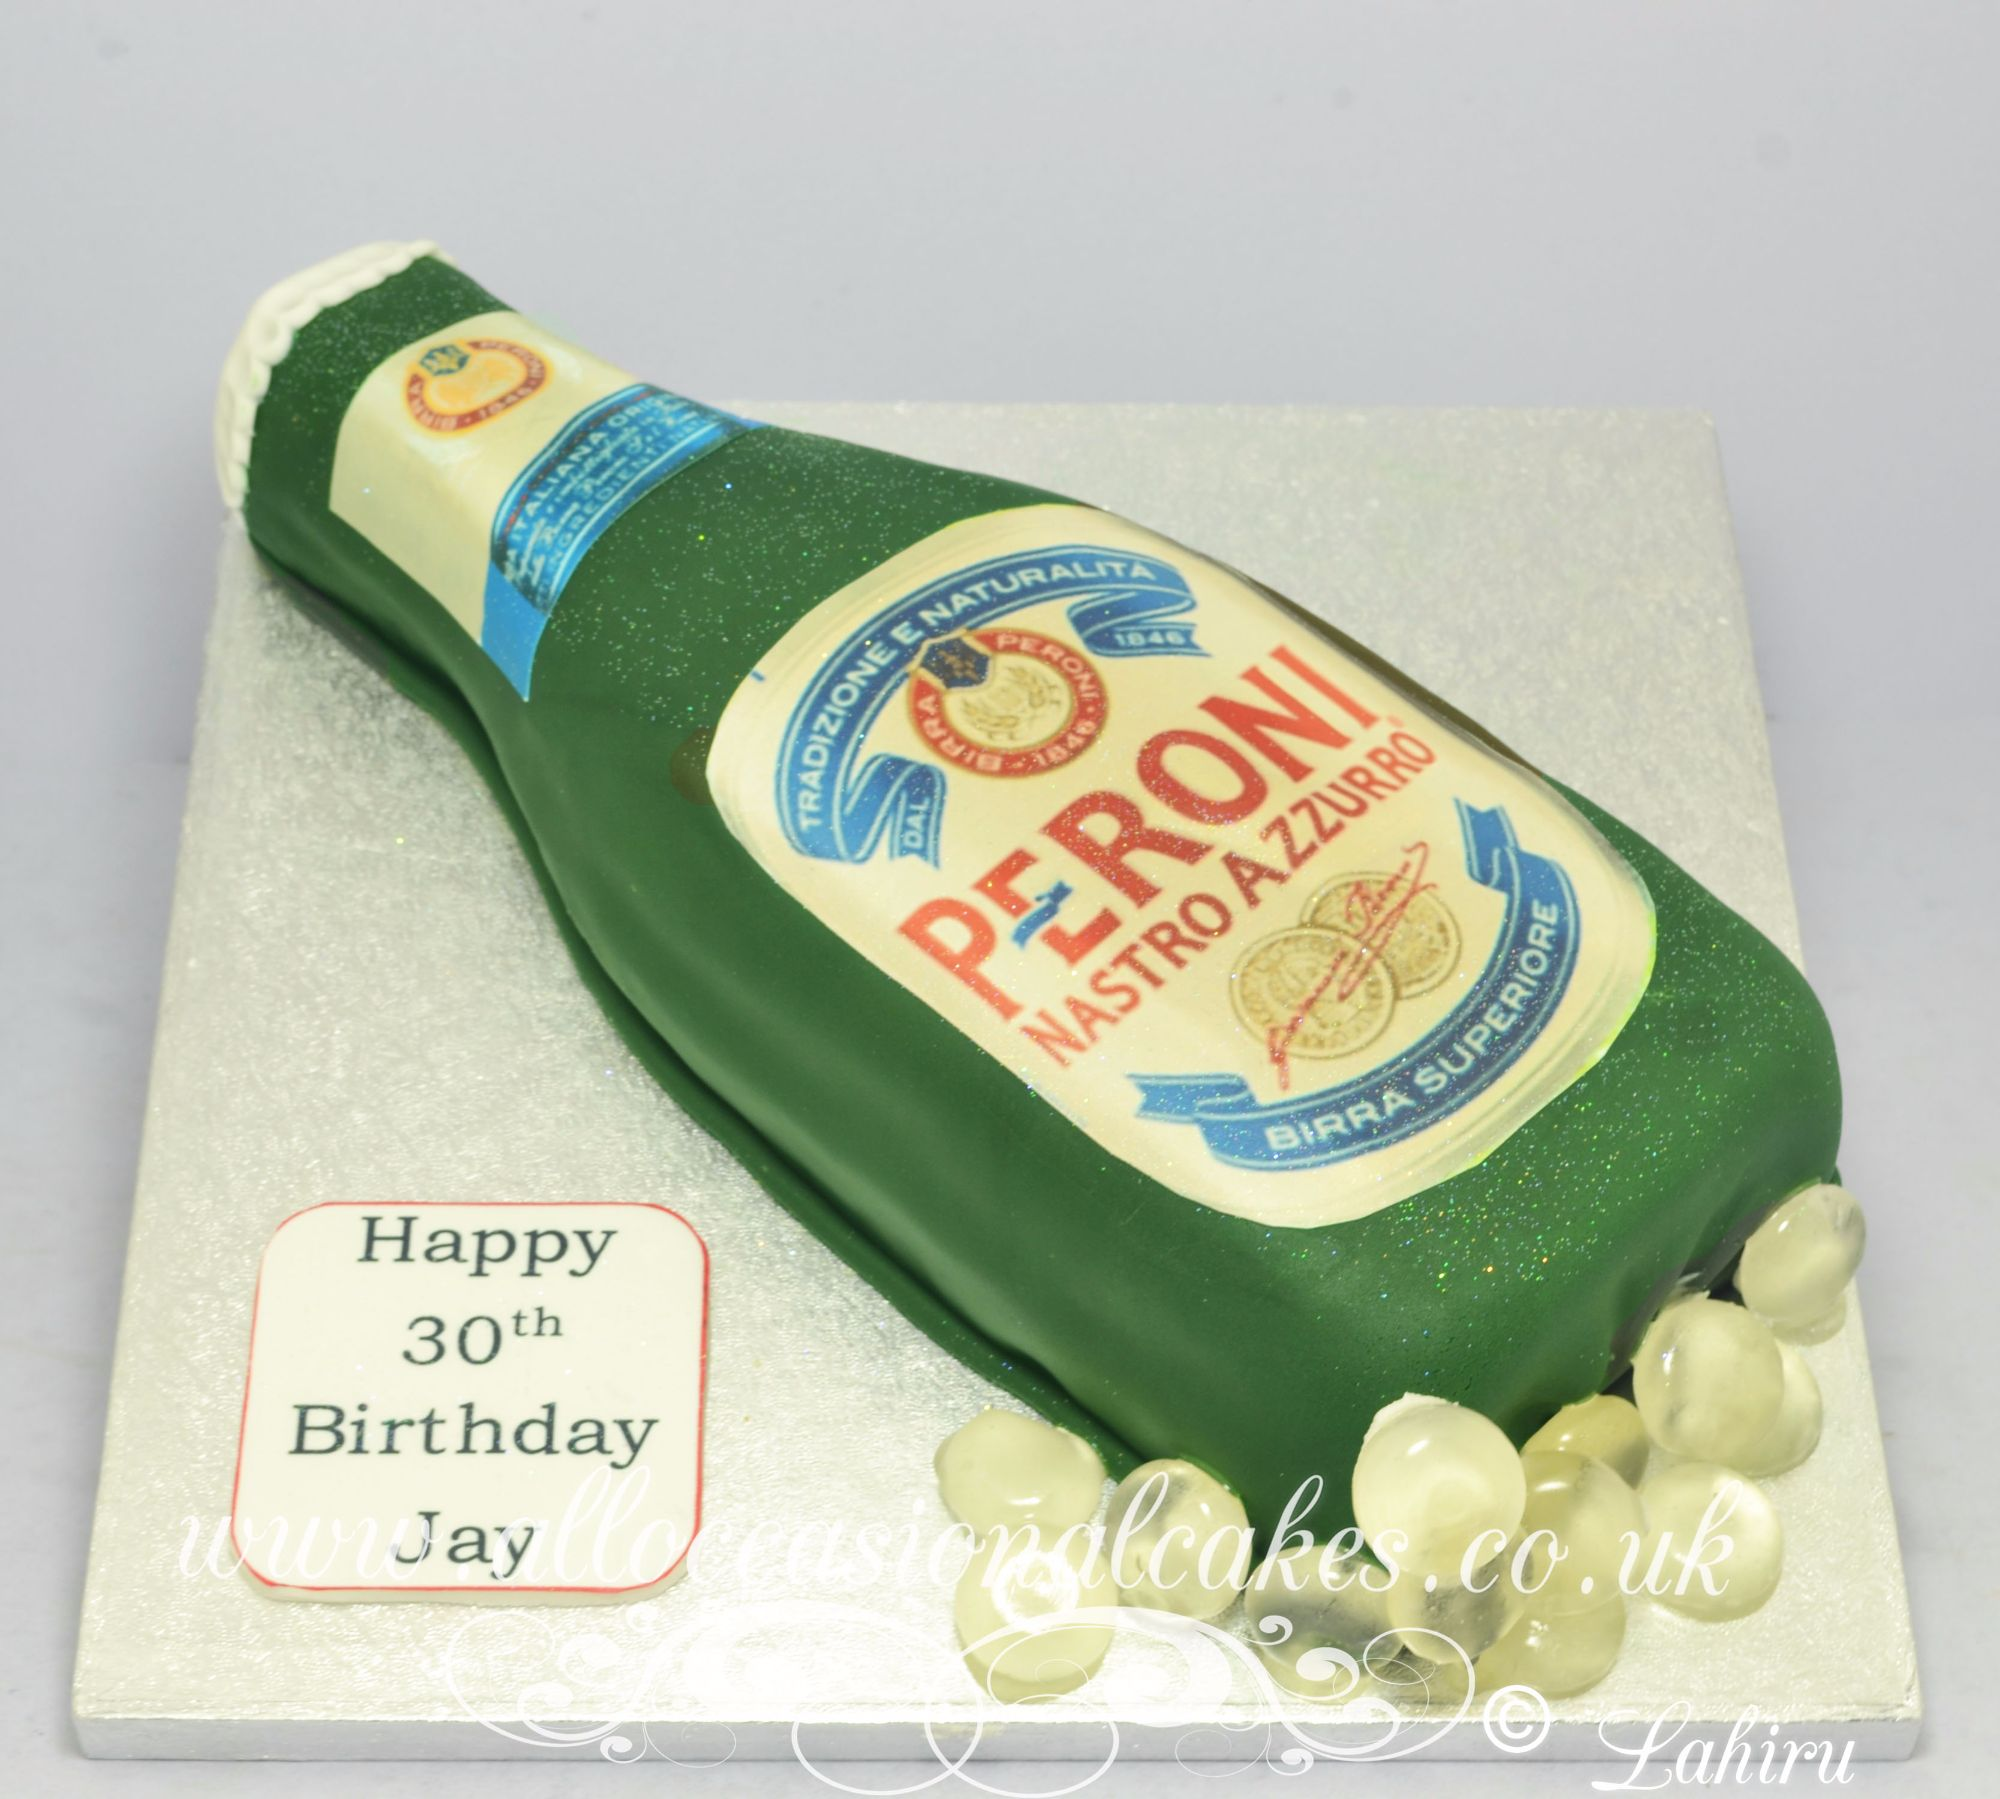 peroni bottle birthday cake